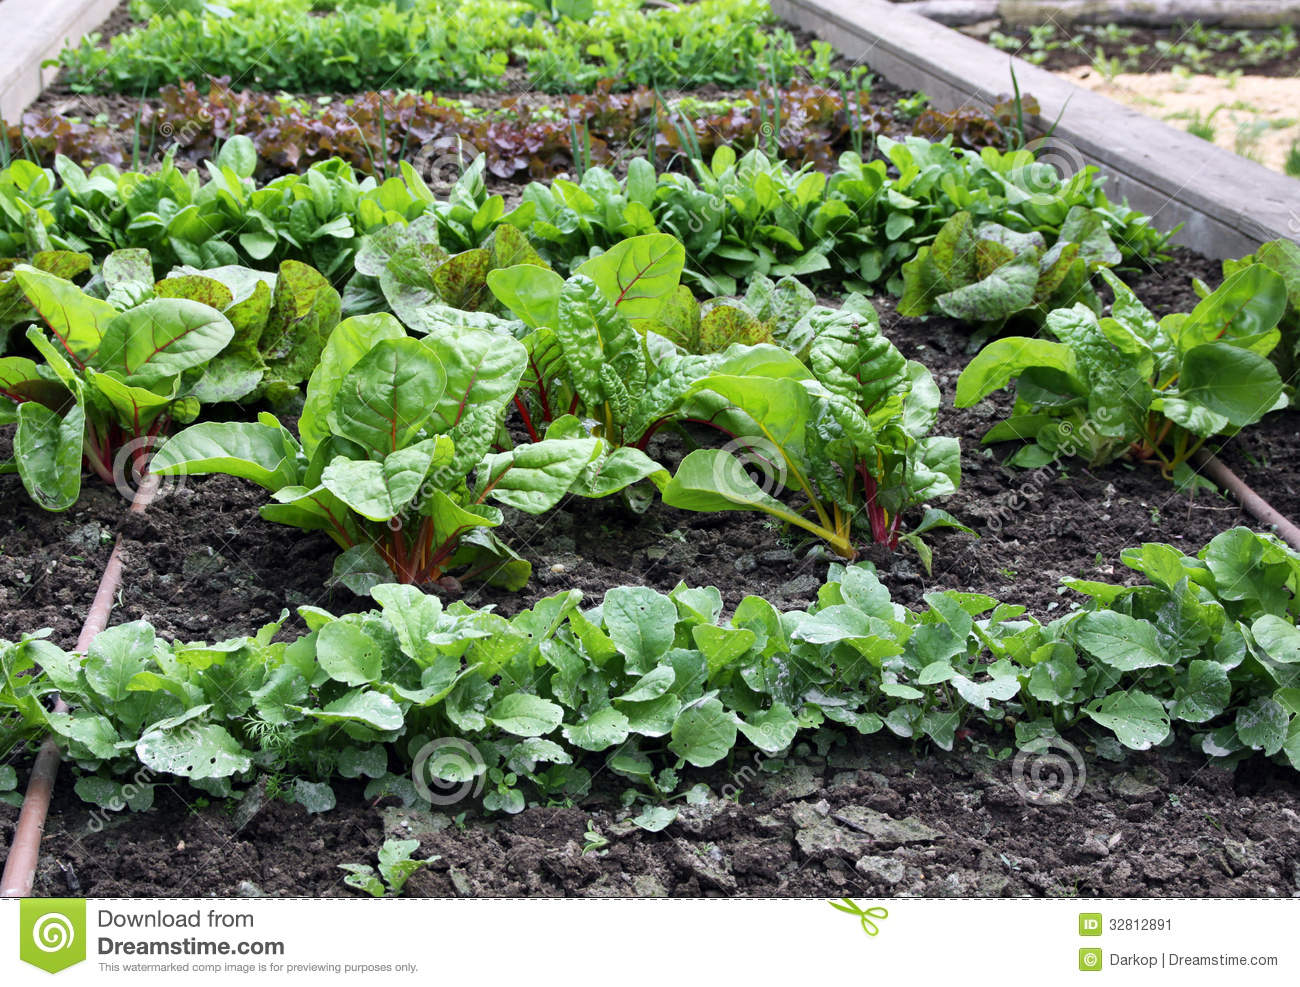 Raised vegetable garden bed with watering system stock image image of garden raised 32812891 Flowers to plant in vegetable garden